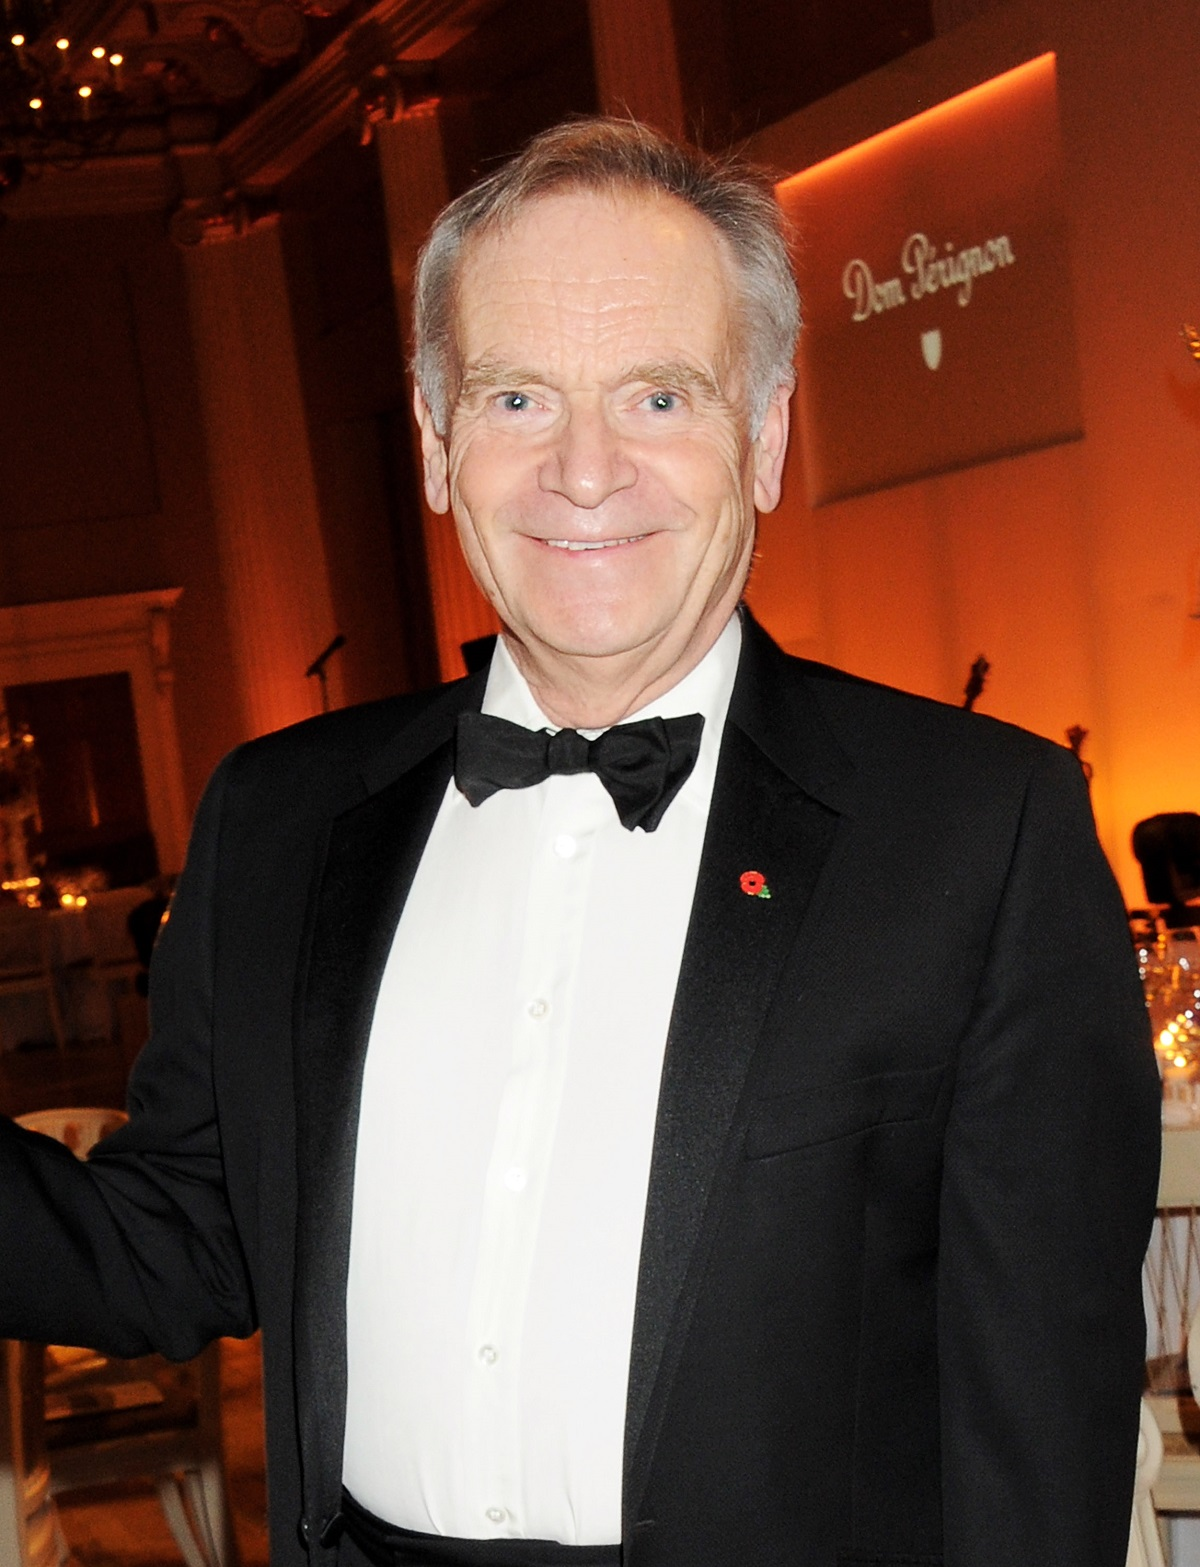 Jeffrey Archer in a suit at a Place for Peace fundraiser in 2012